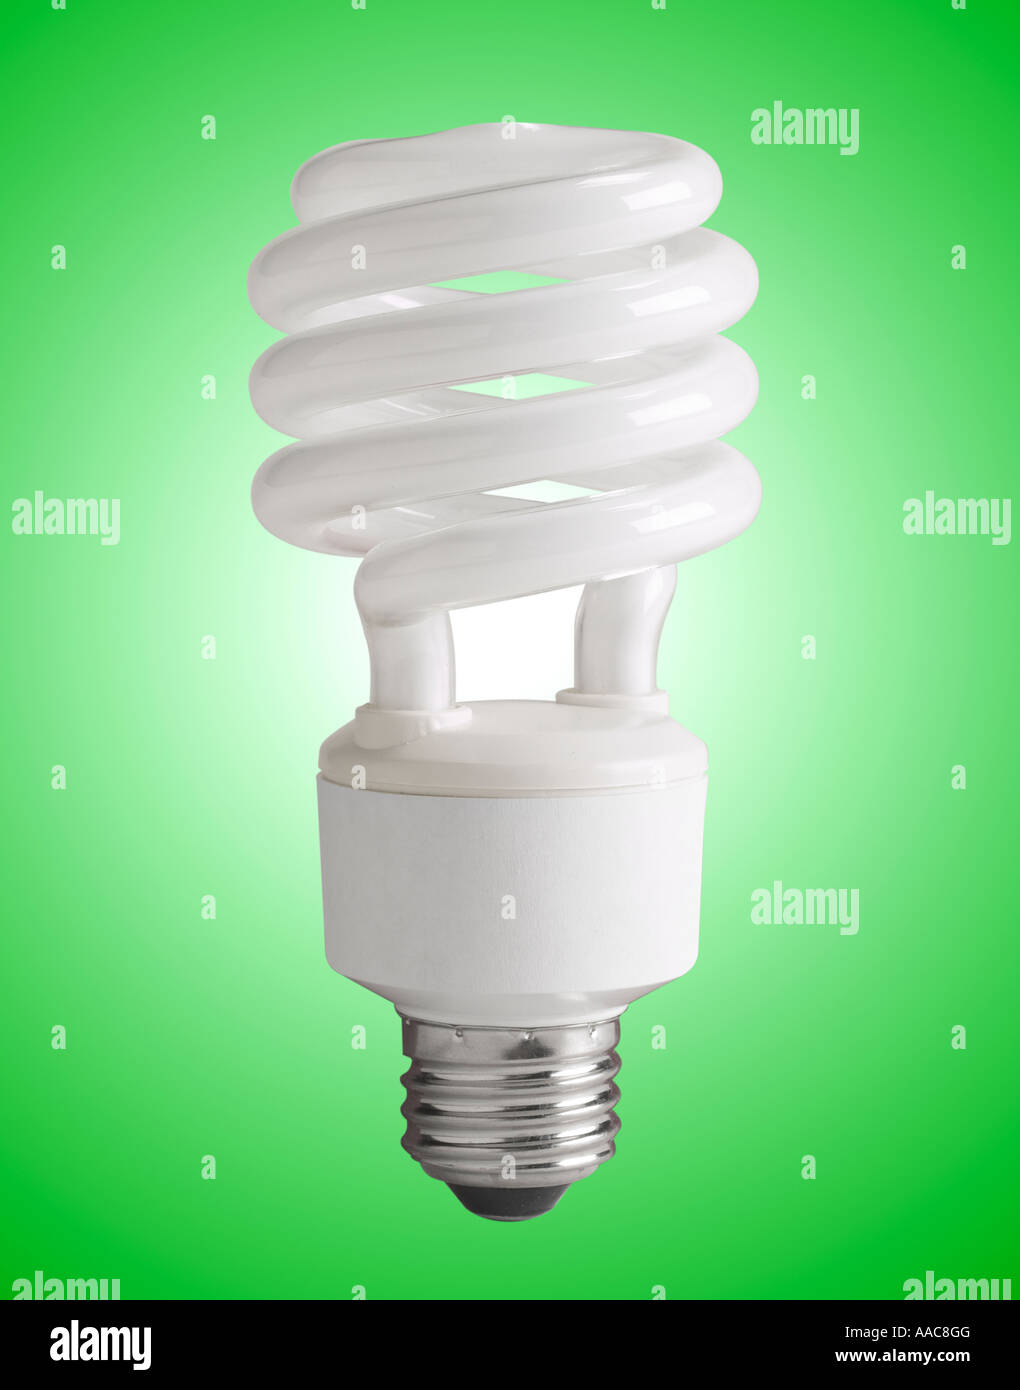 Energy Efficient Compact Fluorescent Light Bulb, CFL Bulb Glowing In ... for glowing cfl bulb  45gtk